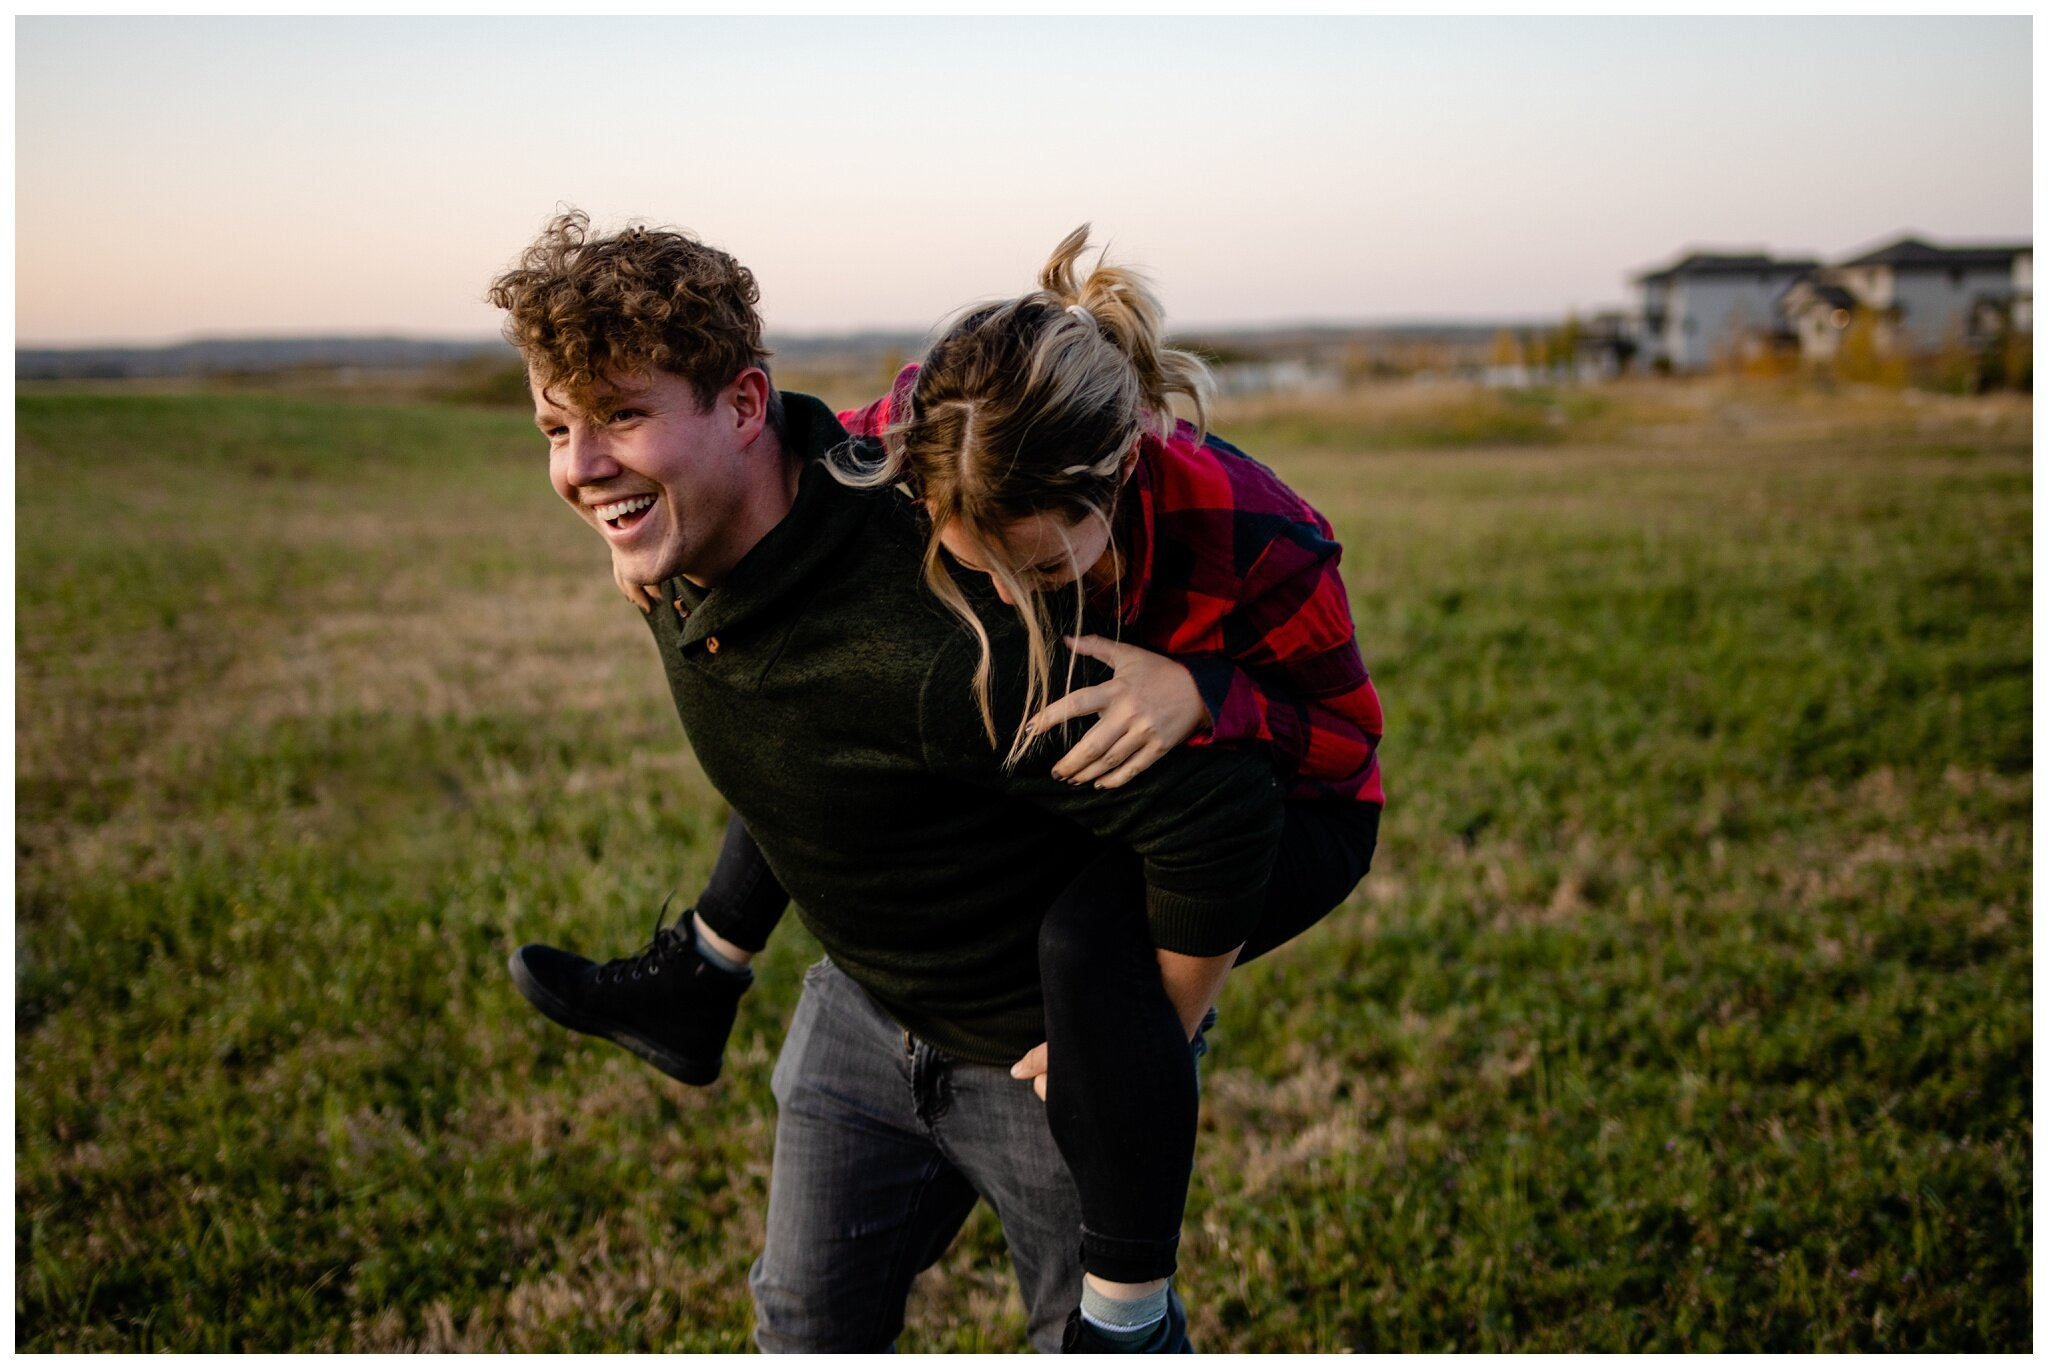 Spruce Grove Engagement Photographer Couples Connection Romantic Photography_0012.jpg